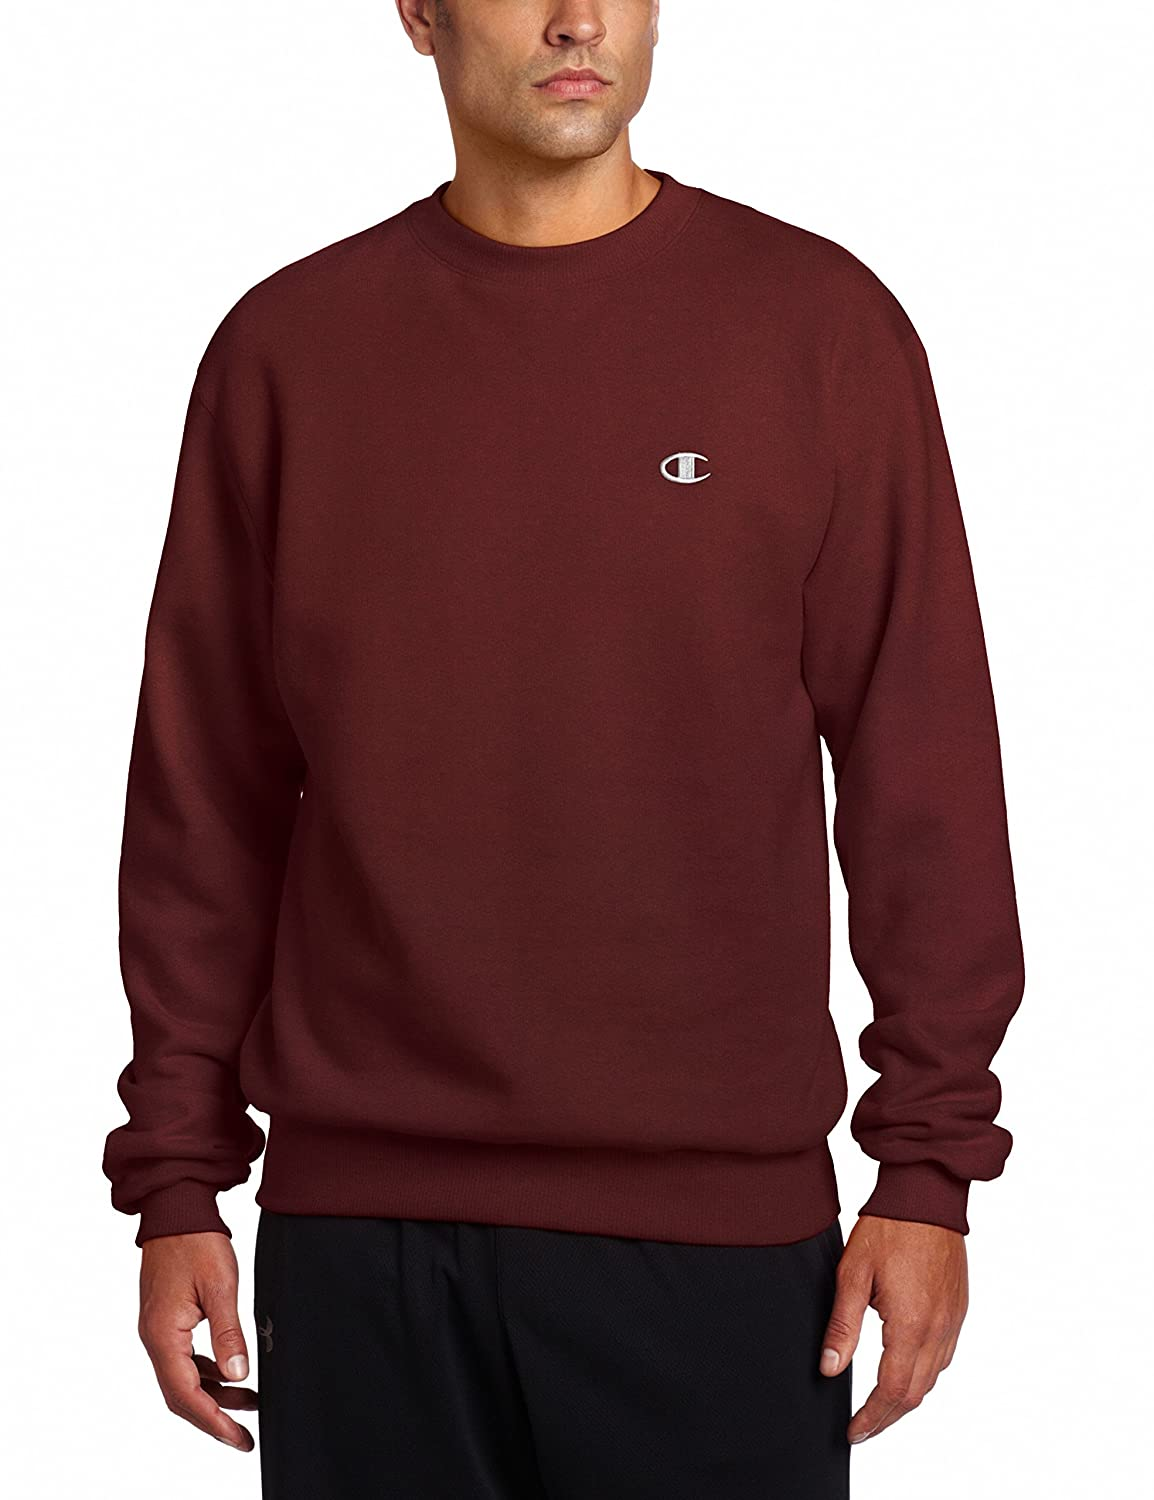 53989c09e72e Amazon.com  Champion Men s Pullover Eco Fleece Sweatshirt  Clothing